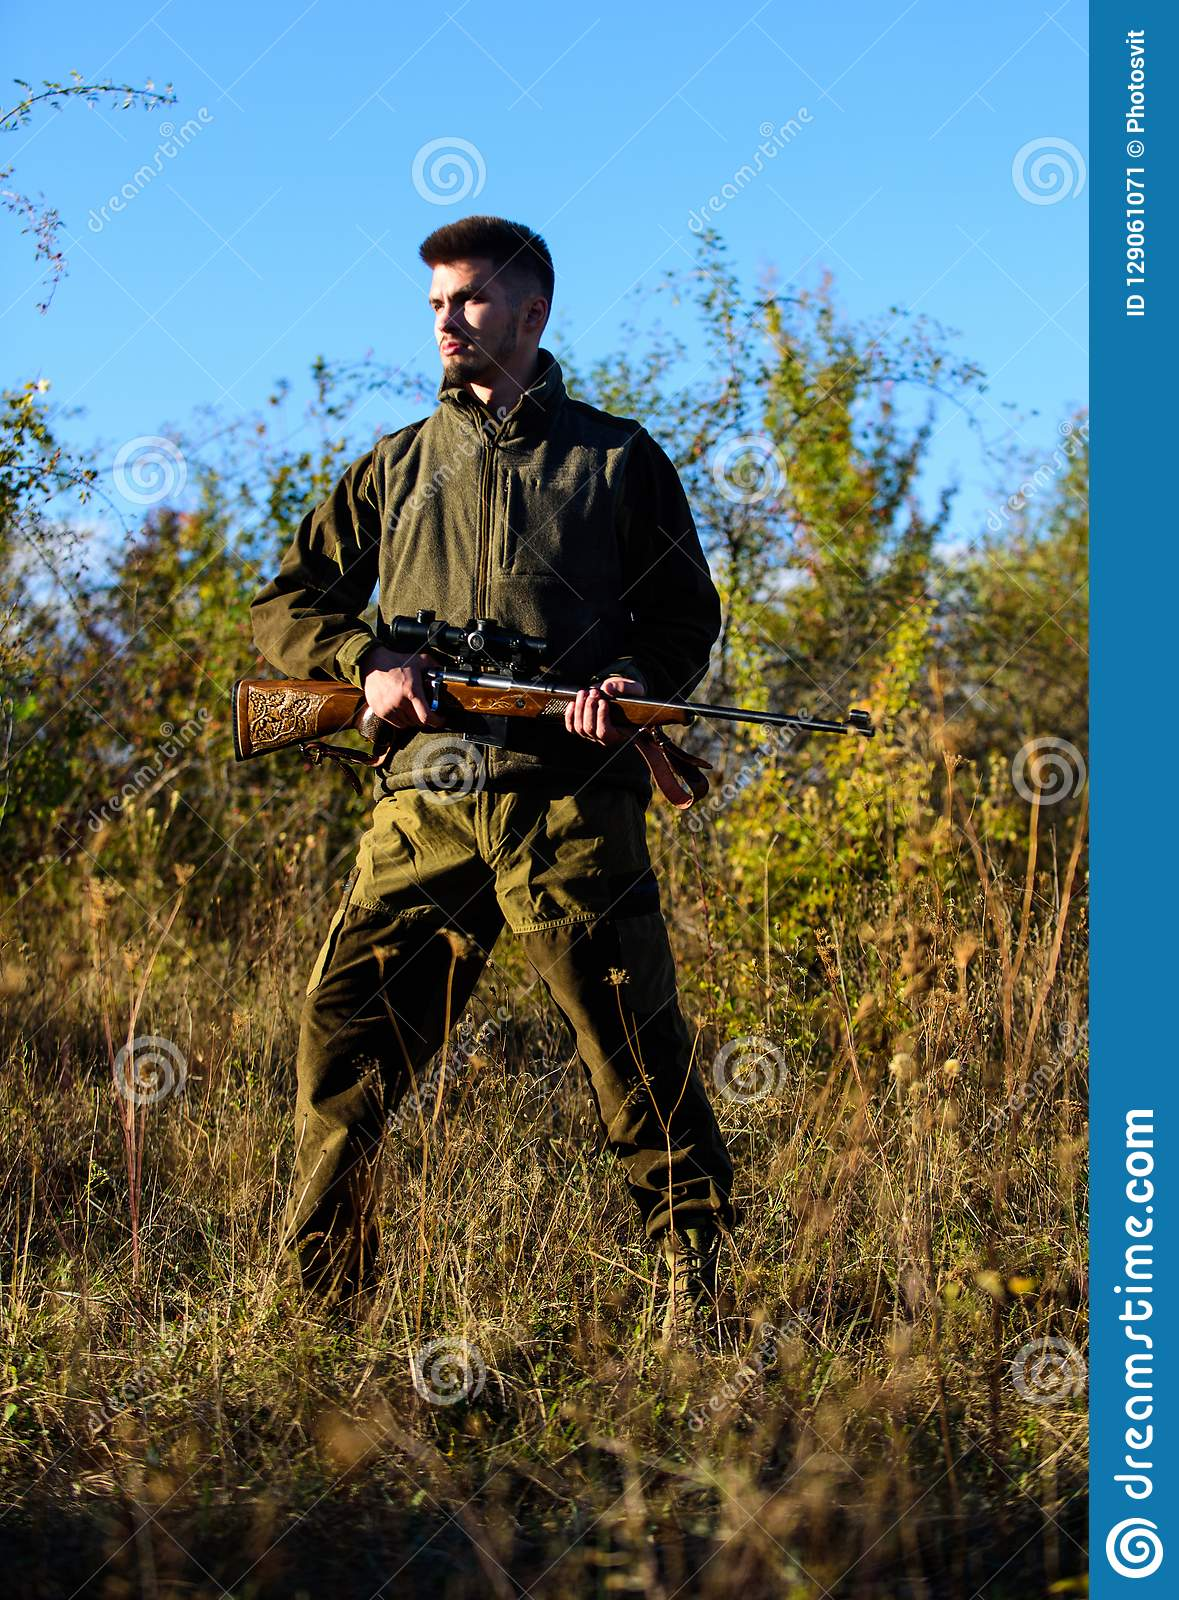 Hunting Hobby Concept Hunting Season Experience And Practice Lends Success Hunting Masculine